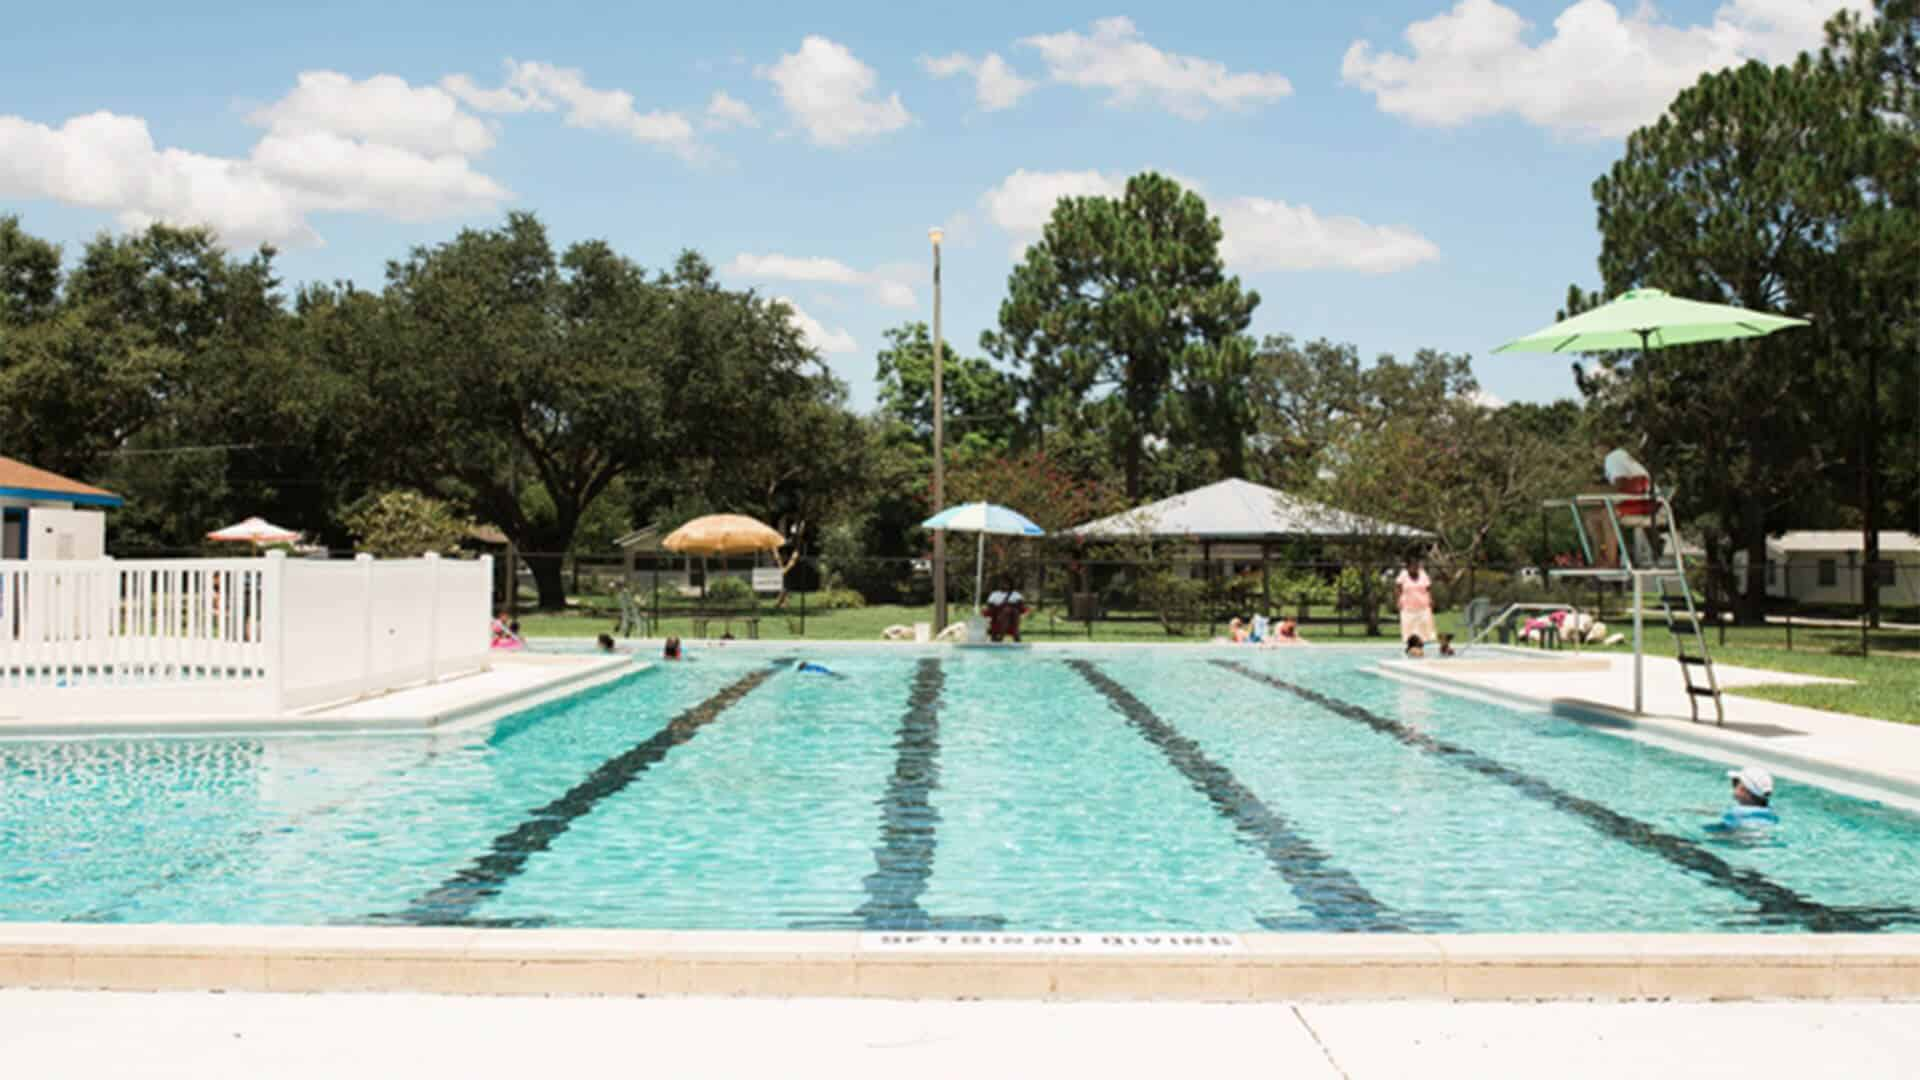 Mulberry community pool city of mulberry - Florida building code public swimming pools ...